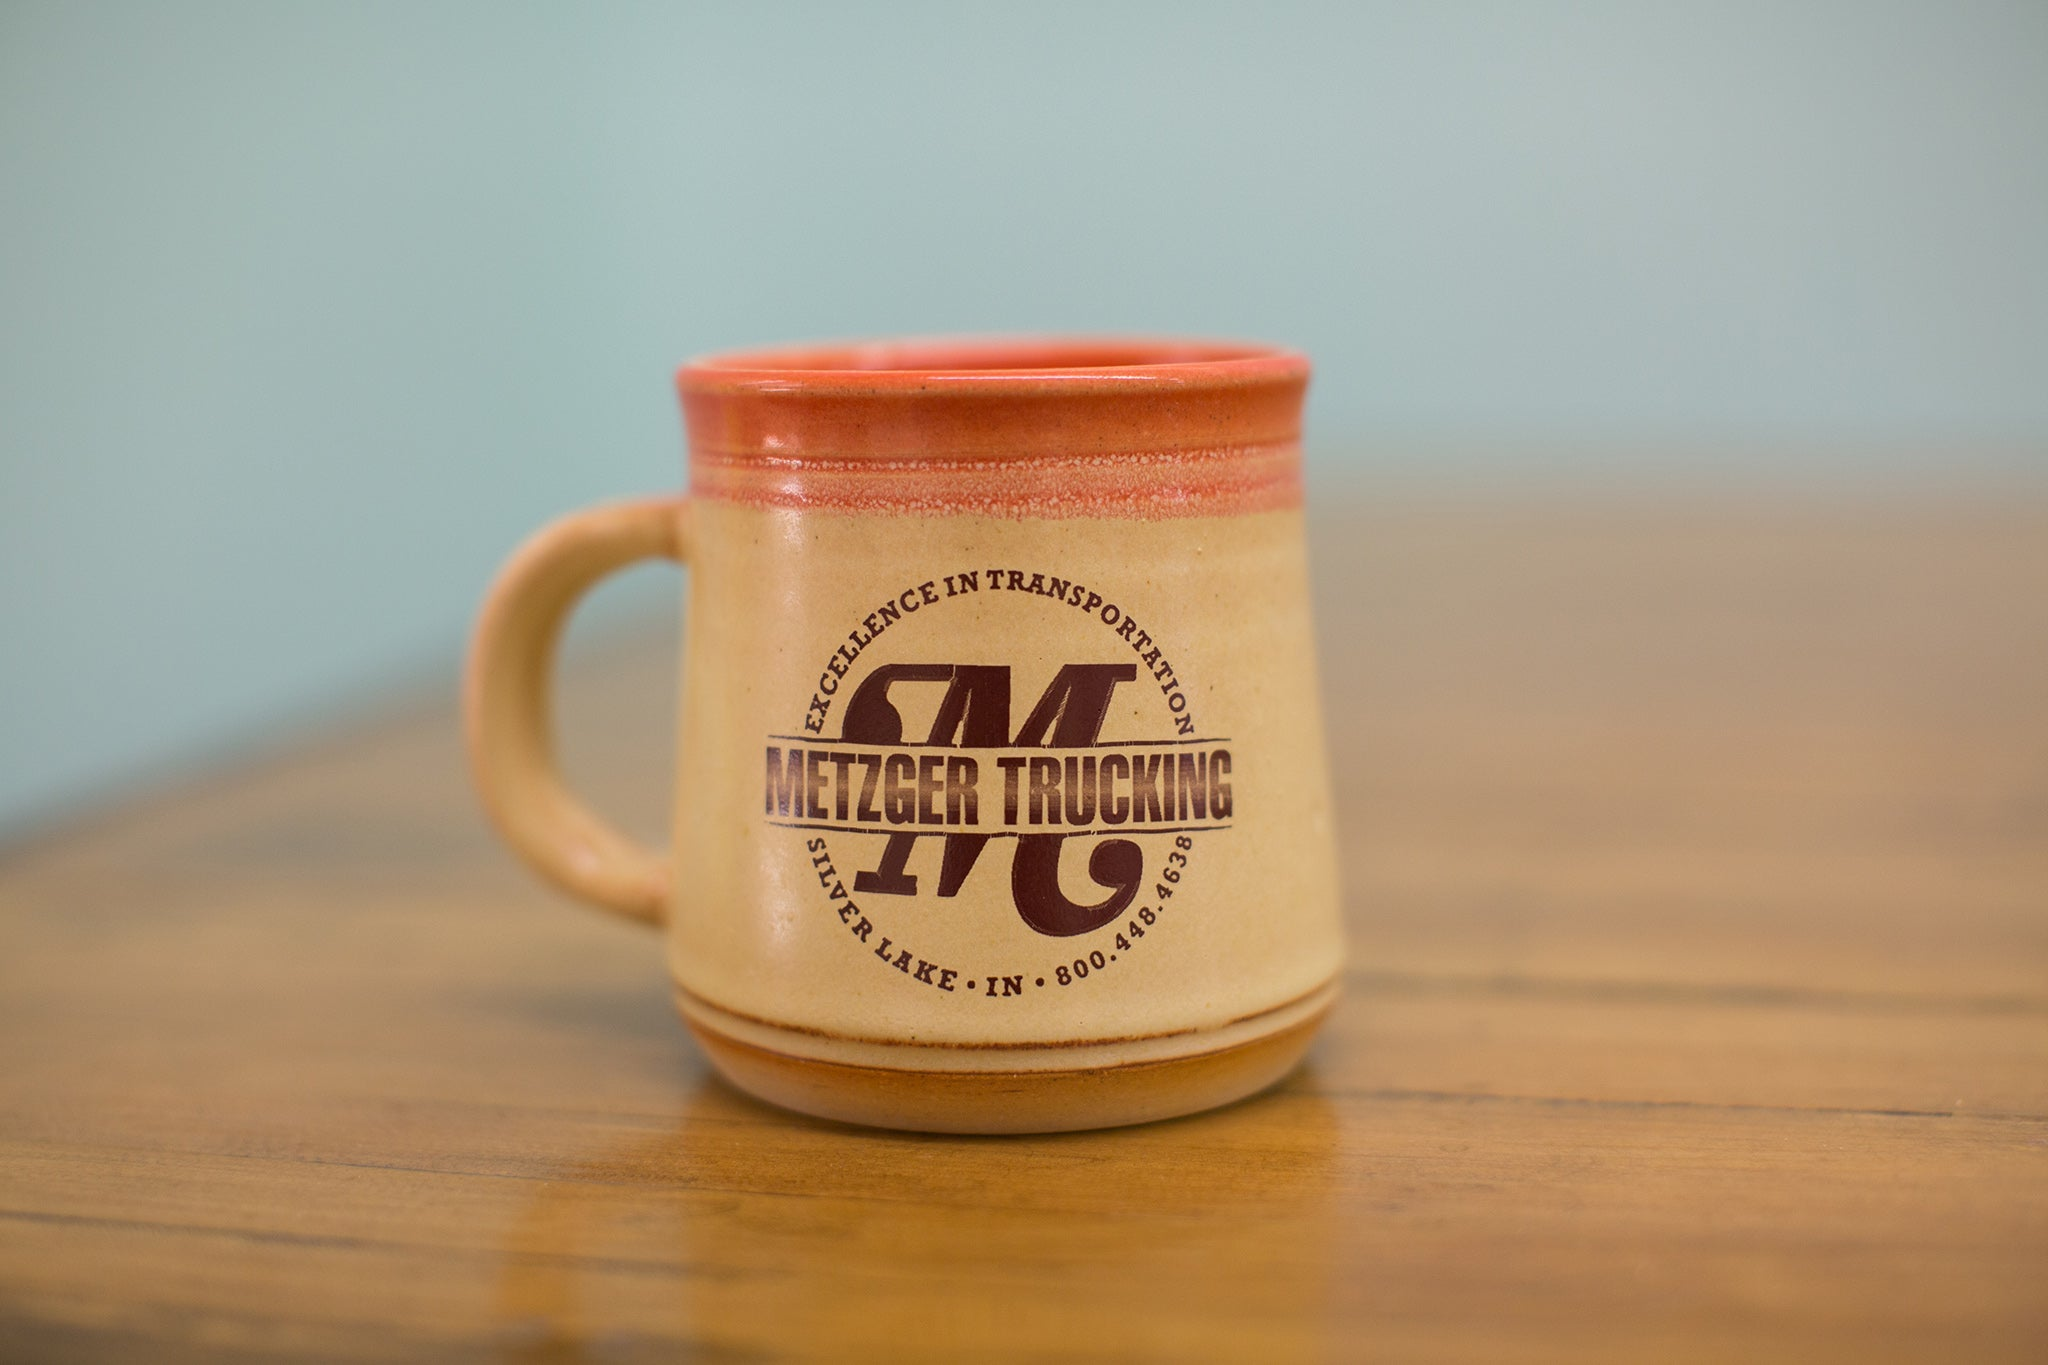 Metzger Trucking custom mug